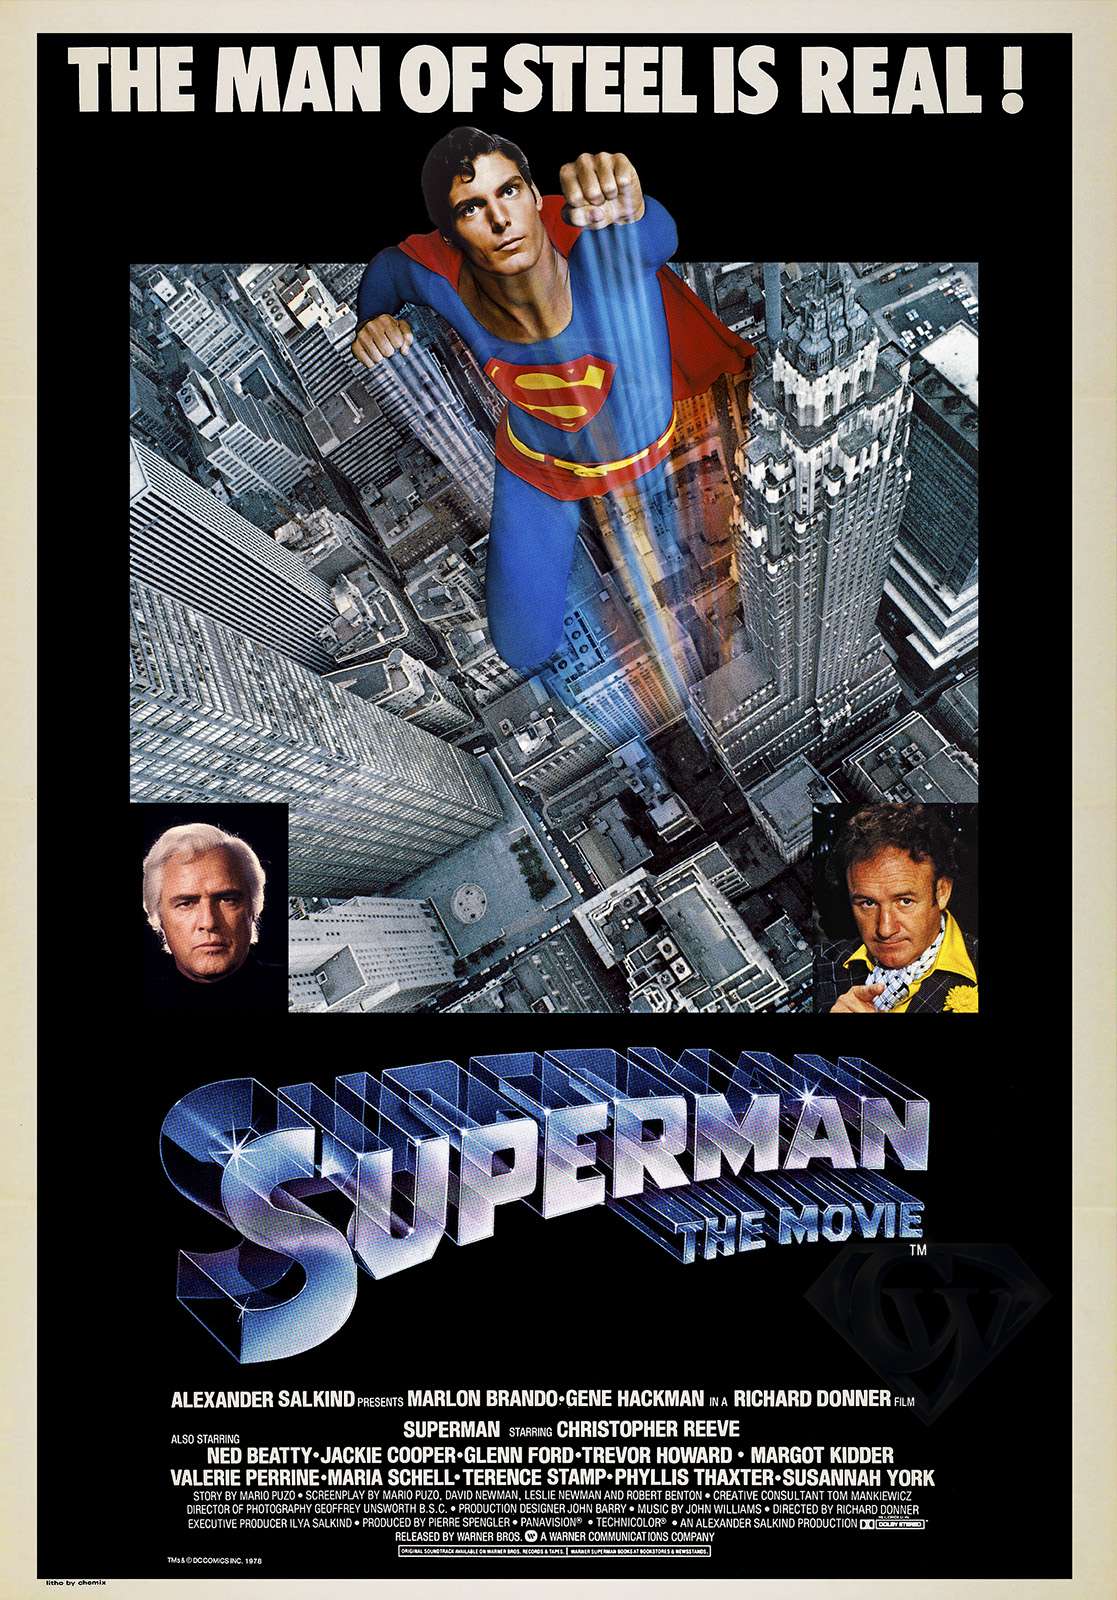 Superman The Movie The Man of Steel is Real Poster